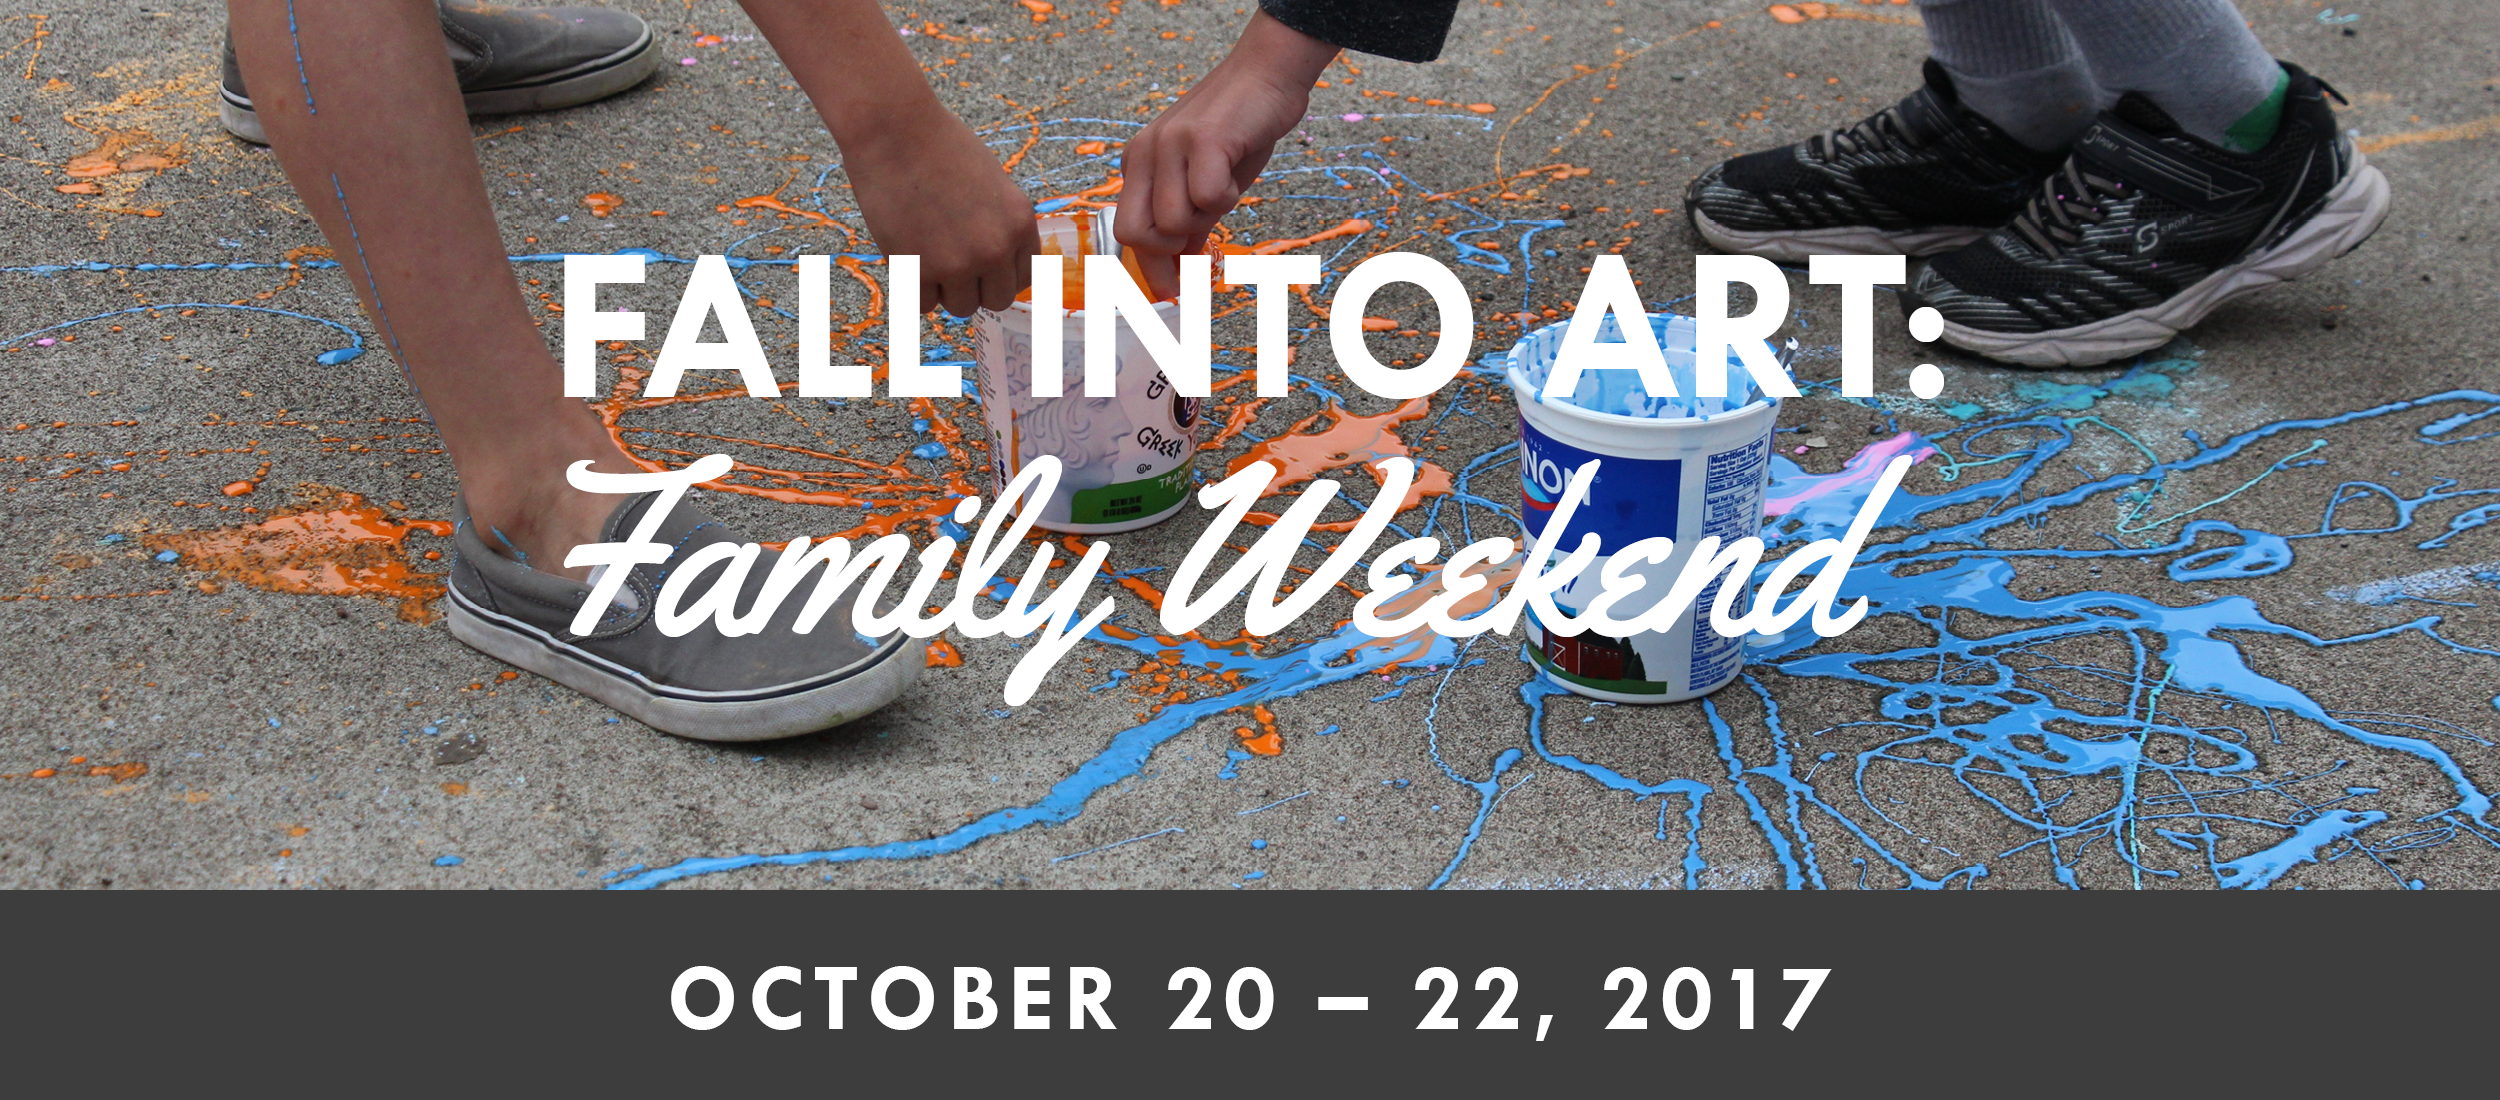 Fall 20into 20art 20family 20weekend 20facebook 20event